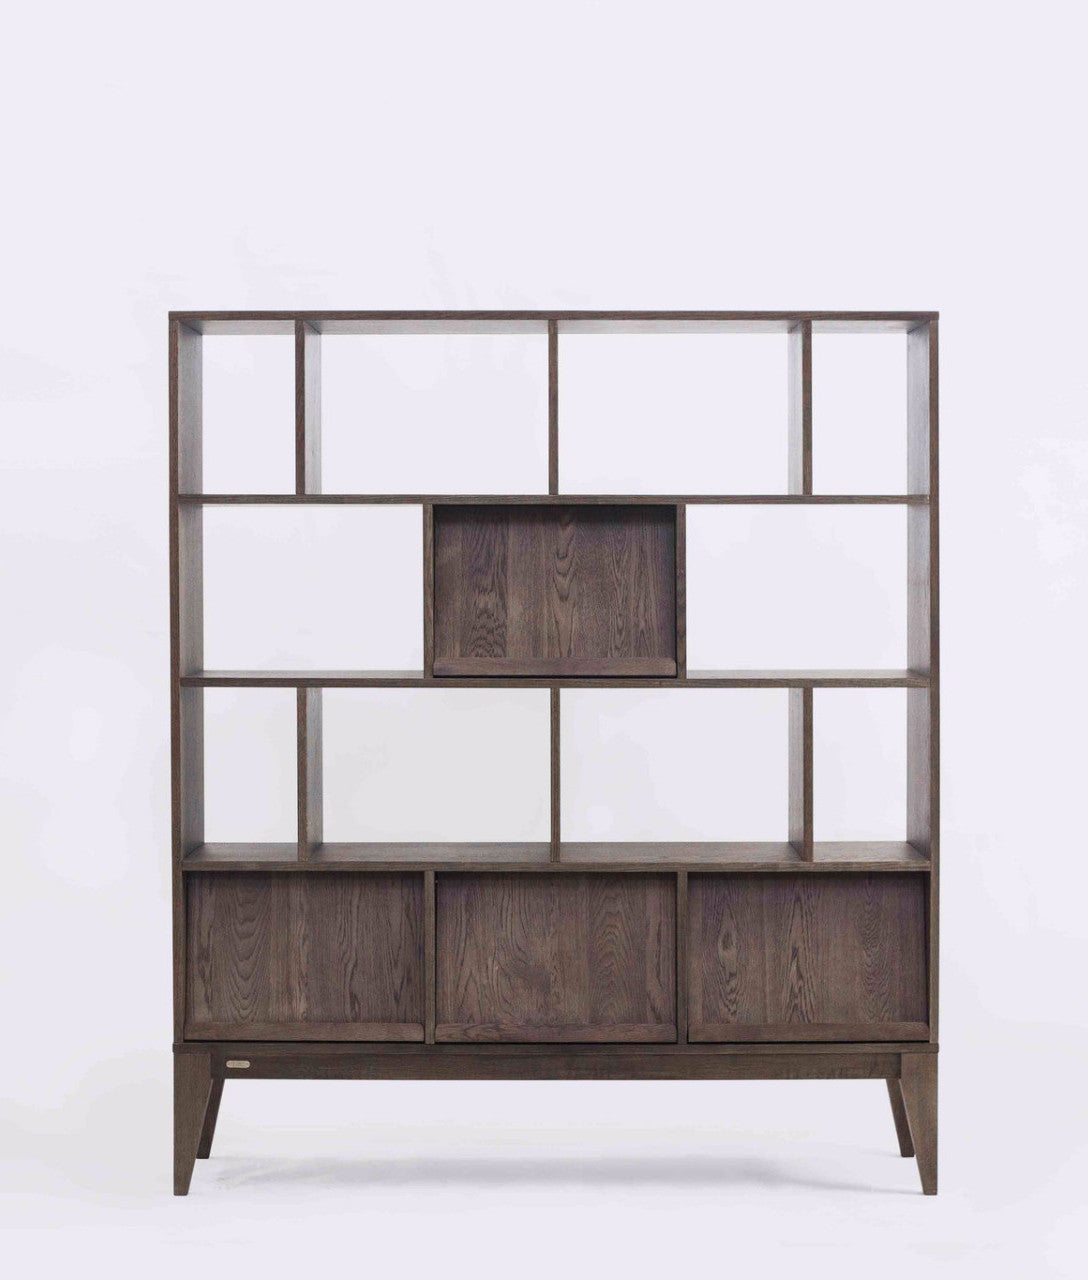 Ziinlife KARLI BOOKSHELF WALNUT BROWN